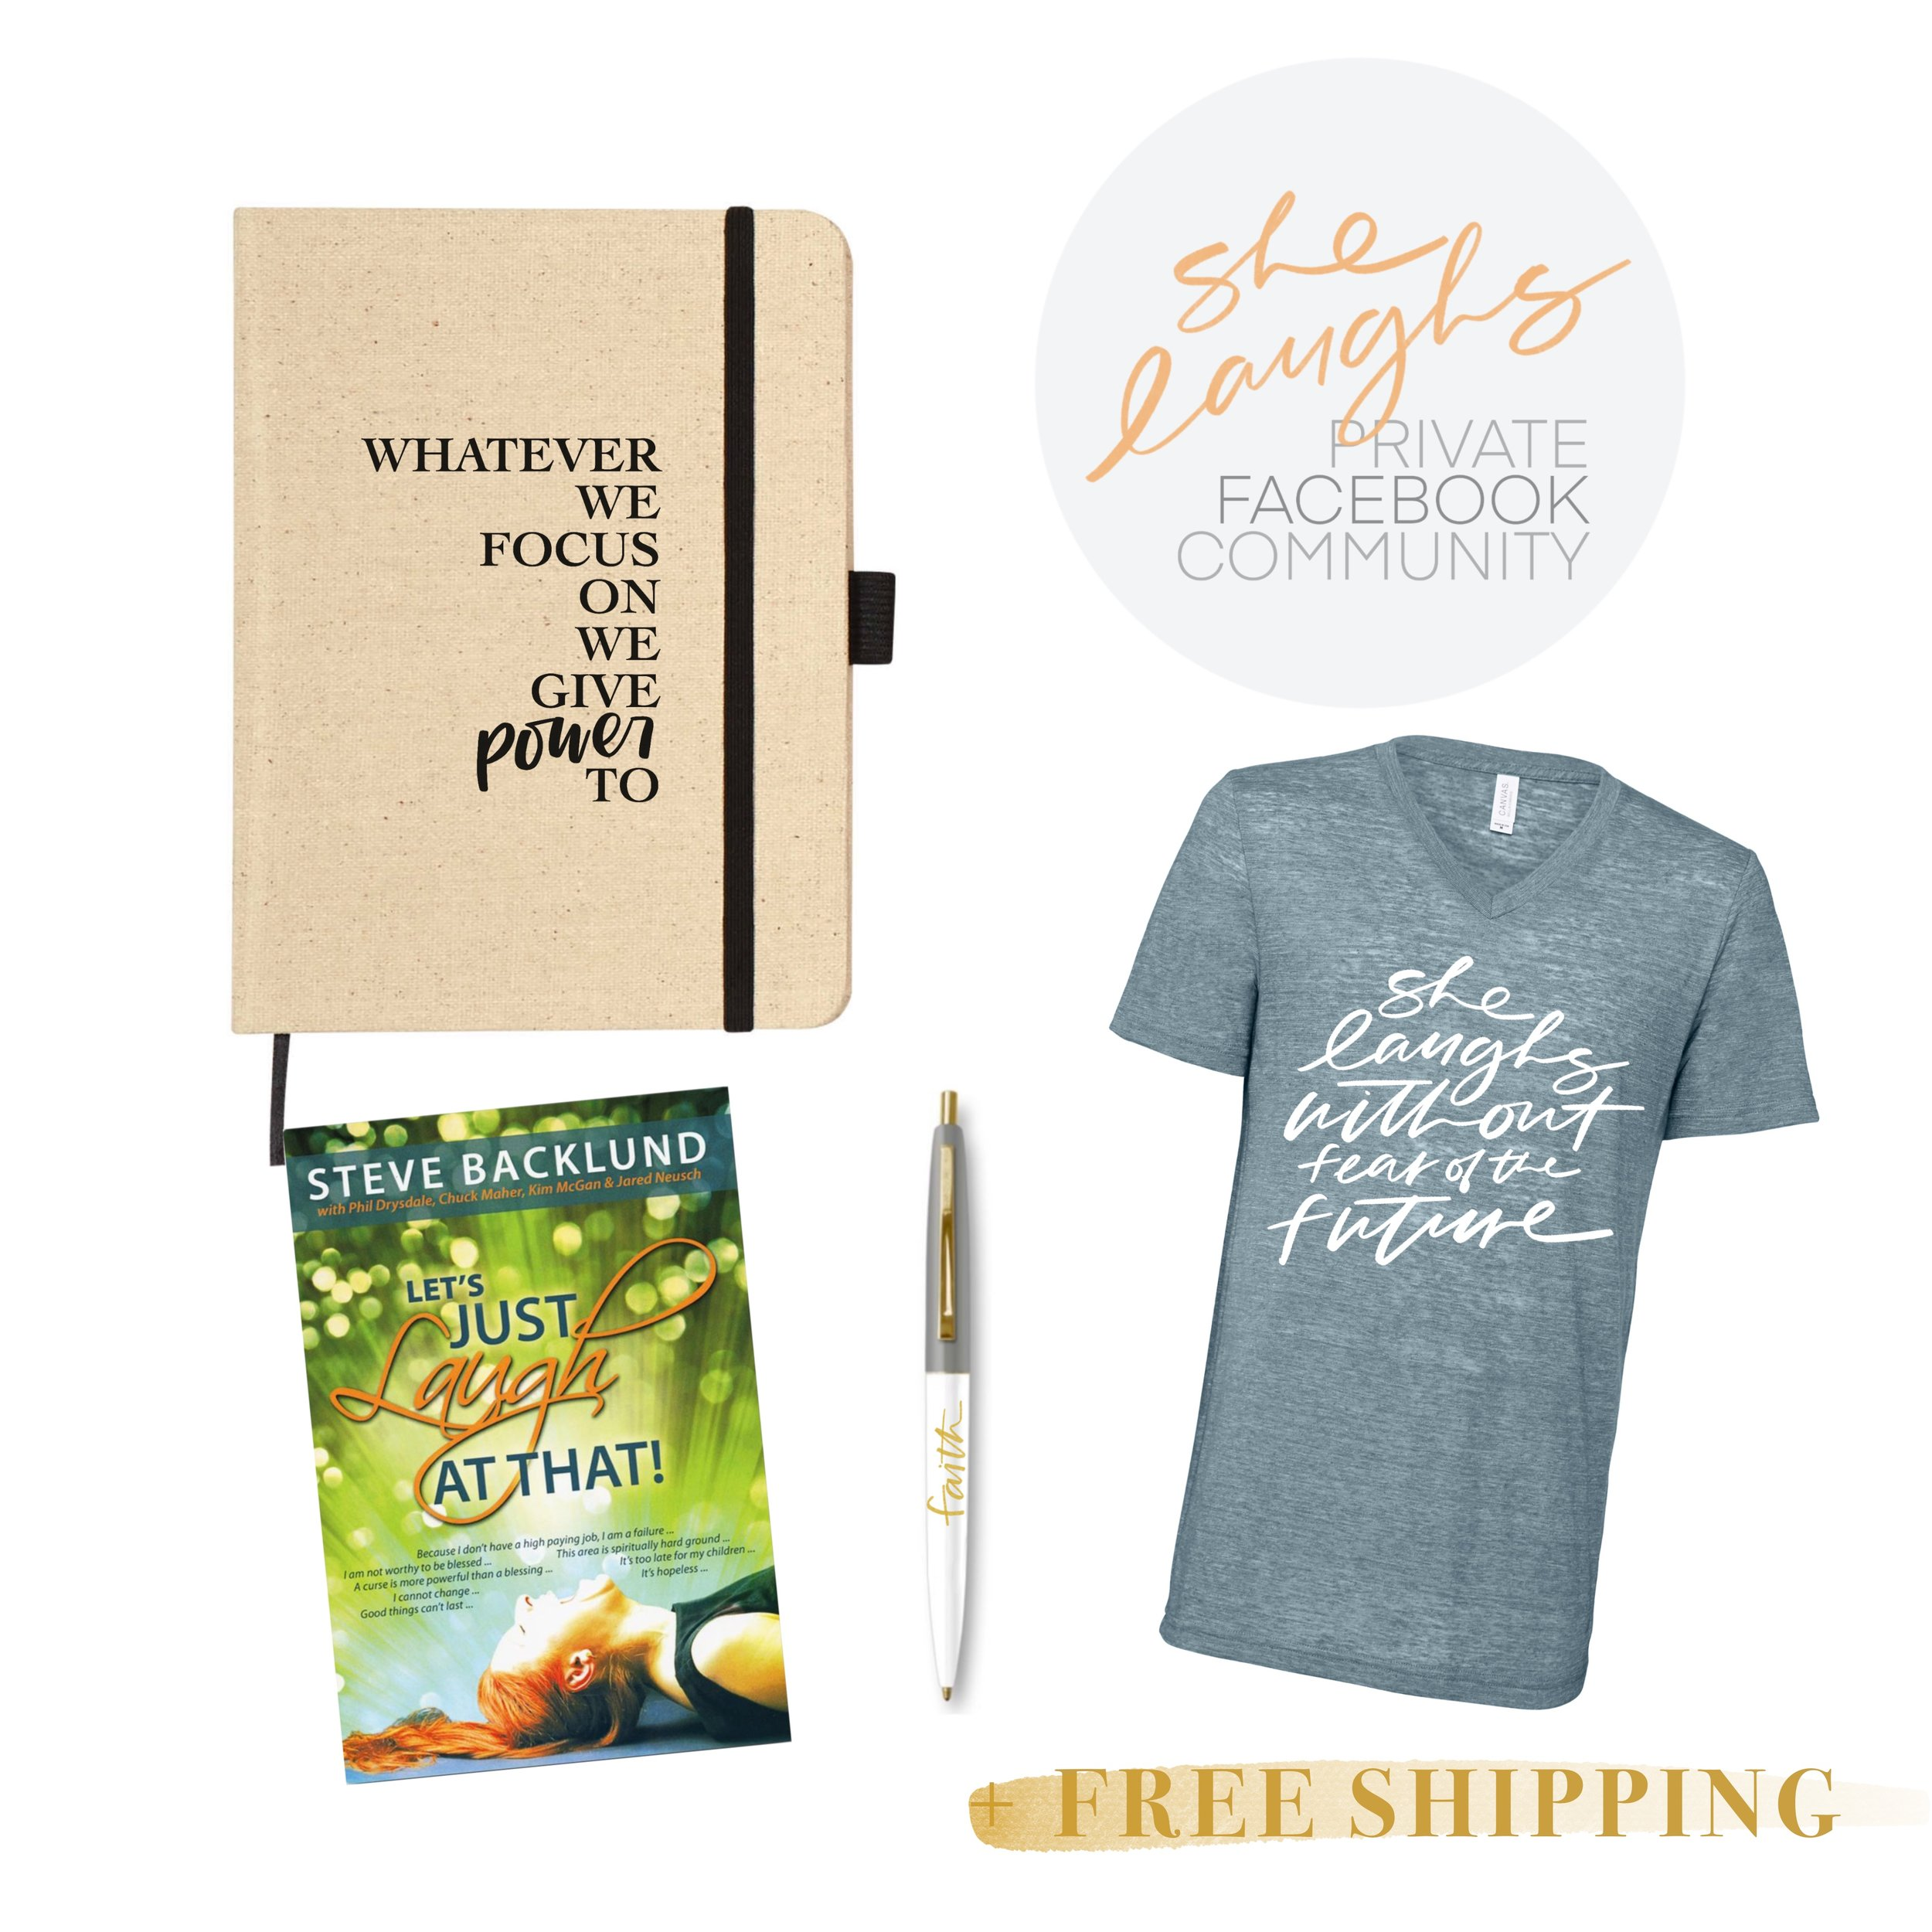 I'm Expectant! - Let's Just Laugh At That BookExclusive Canvas Journal/NotebookGold-accented Ballpoint Pen (your choice from 7)Exclusive V-Neck Tee (sizes XS-2XL)Private Facebook CommunityFree Domestic Shipping$39